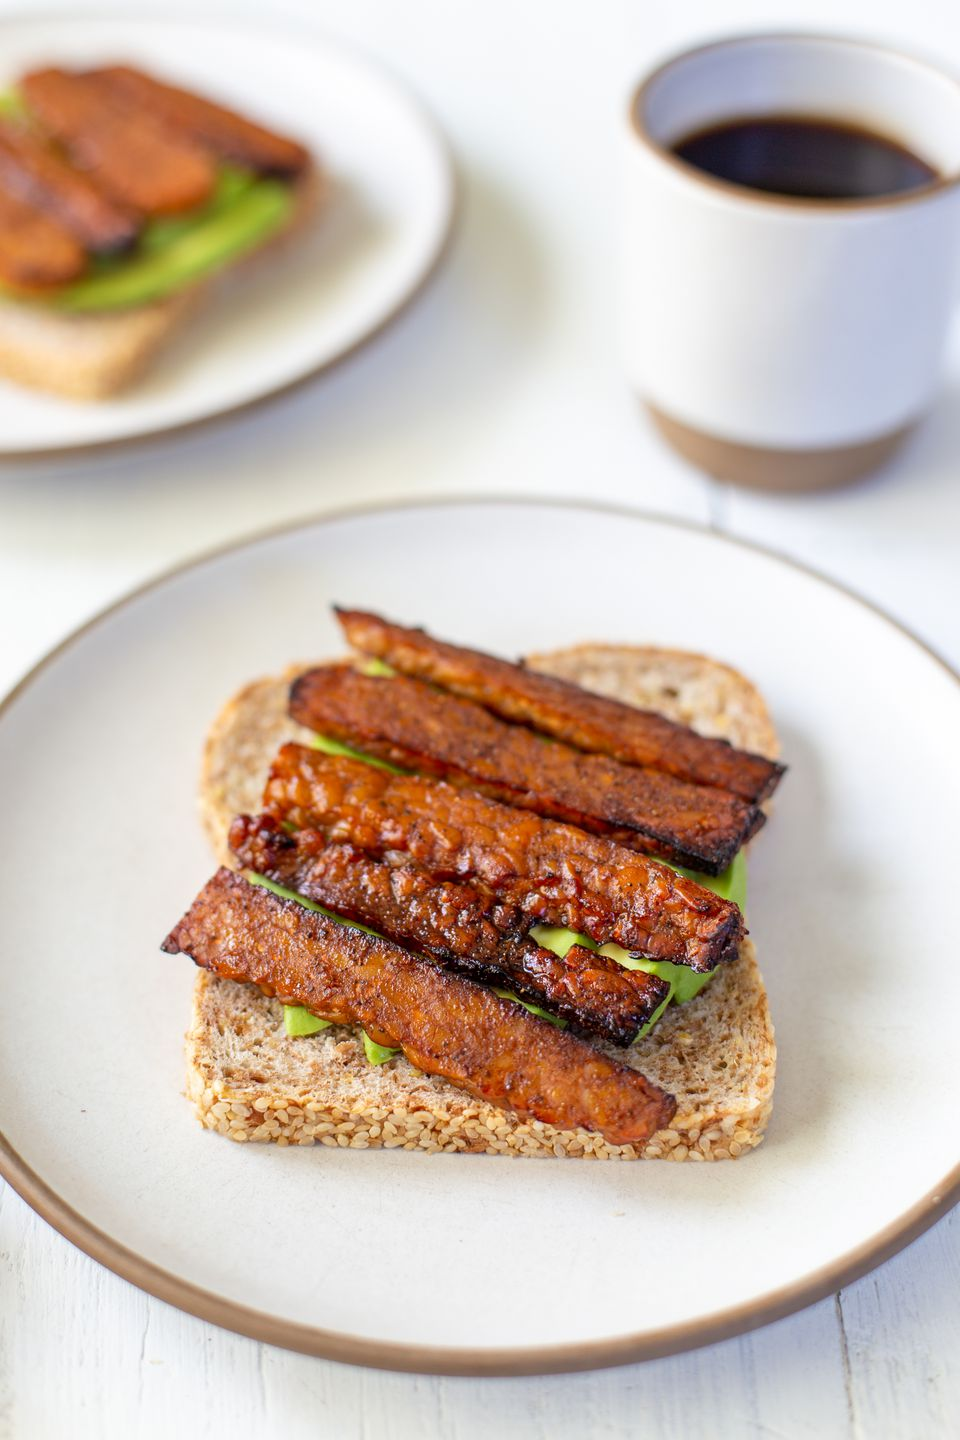 Vegan Bacon on toast with avocado underneath it and a second plate and a cup of coffee behind it.